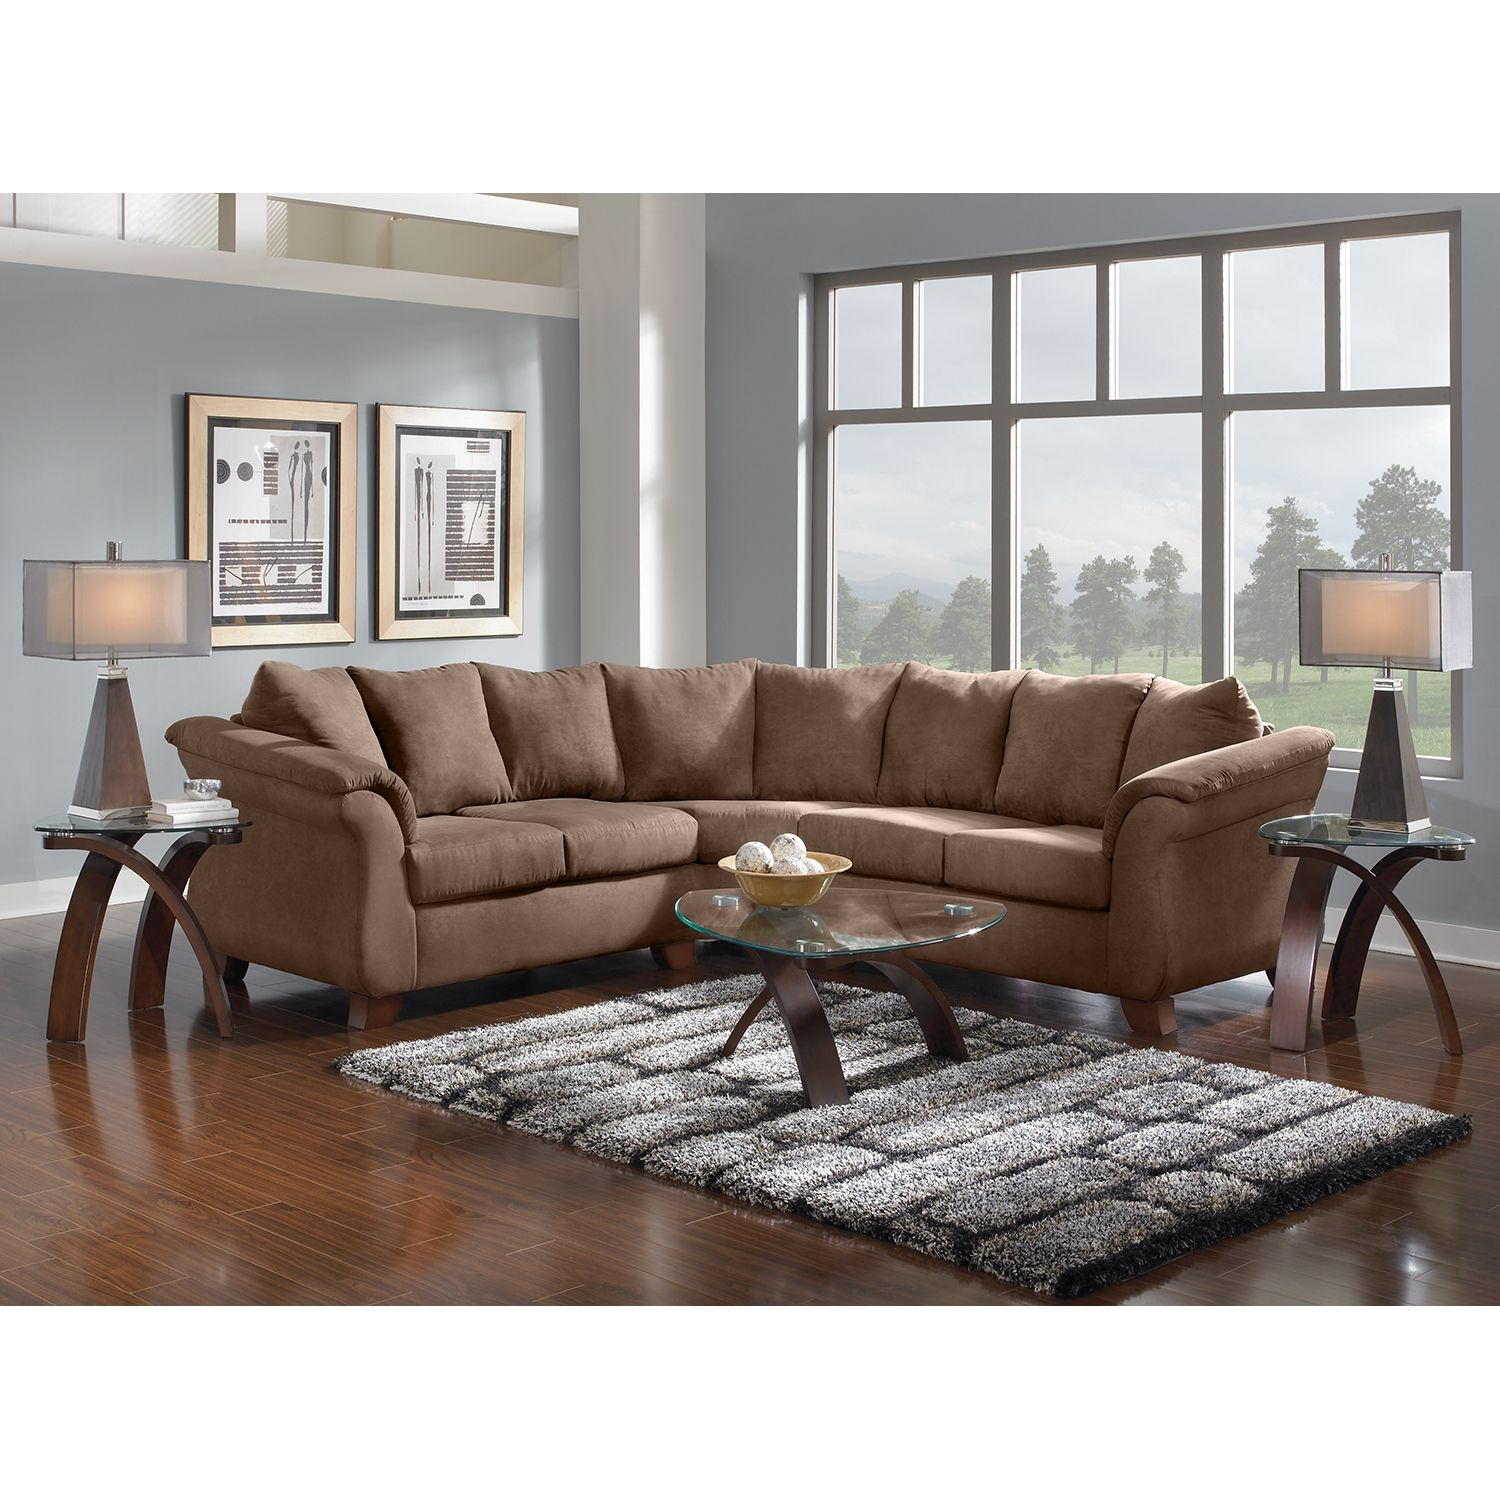 Adrian 2 Piece Sectional Taupe